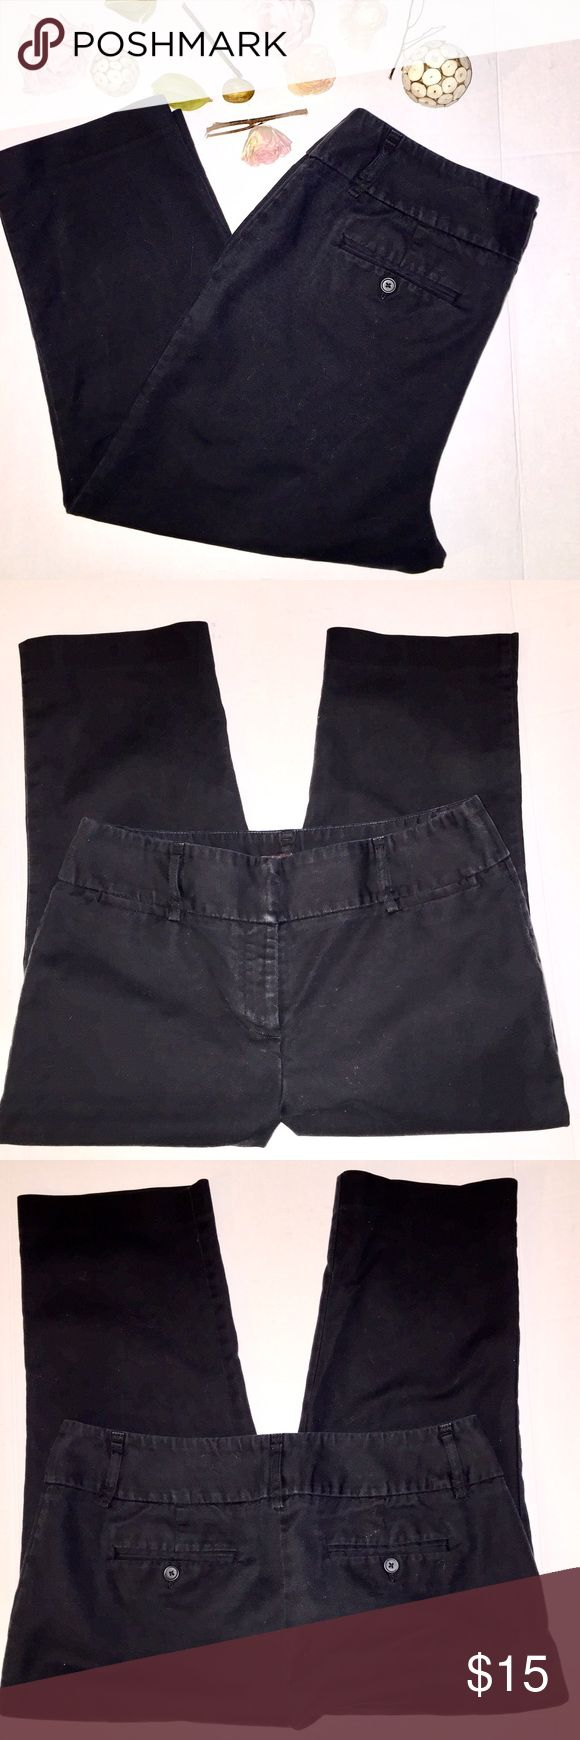 Like New 🌸Dana Buchman 🌸Signature Crop Pants Versatile Stylish Dana Buchman Signature 🌷 Crop Pants, Black, Size 12. Great Condition. Dana Buchman Pants Ankle & Cropped